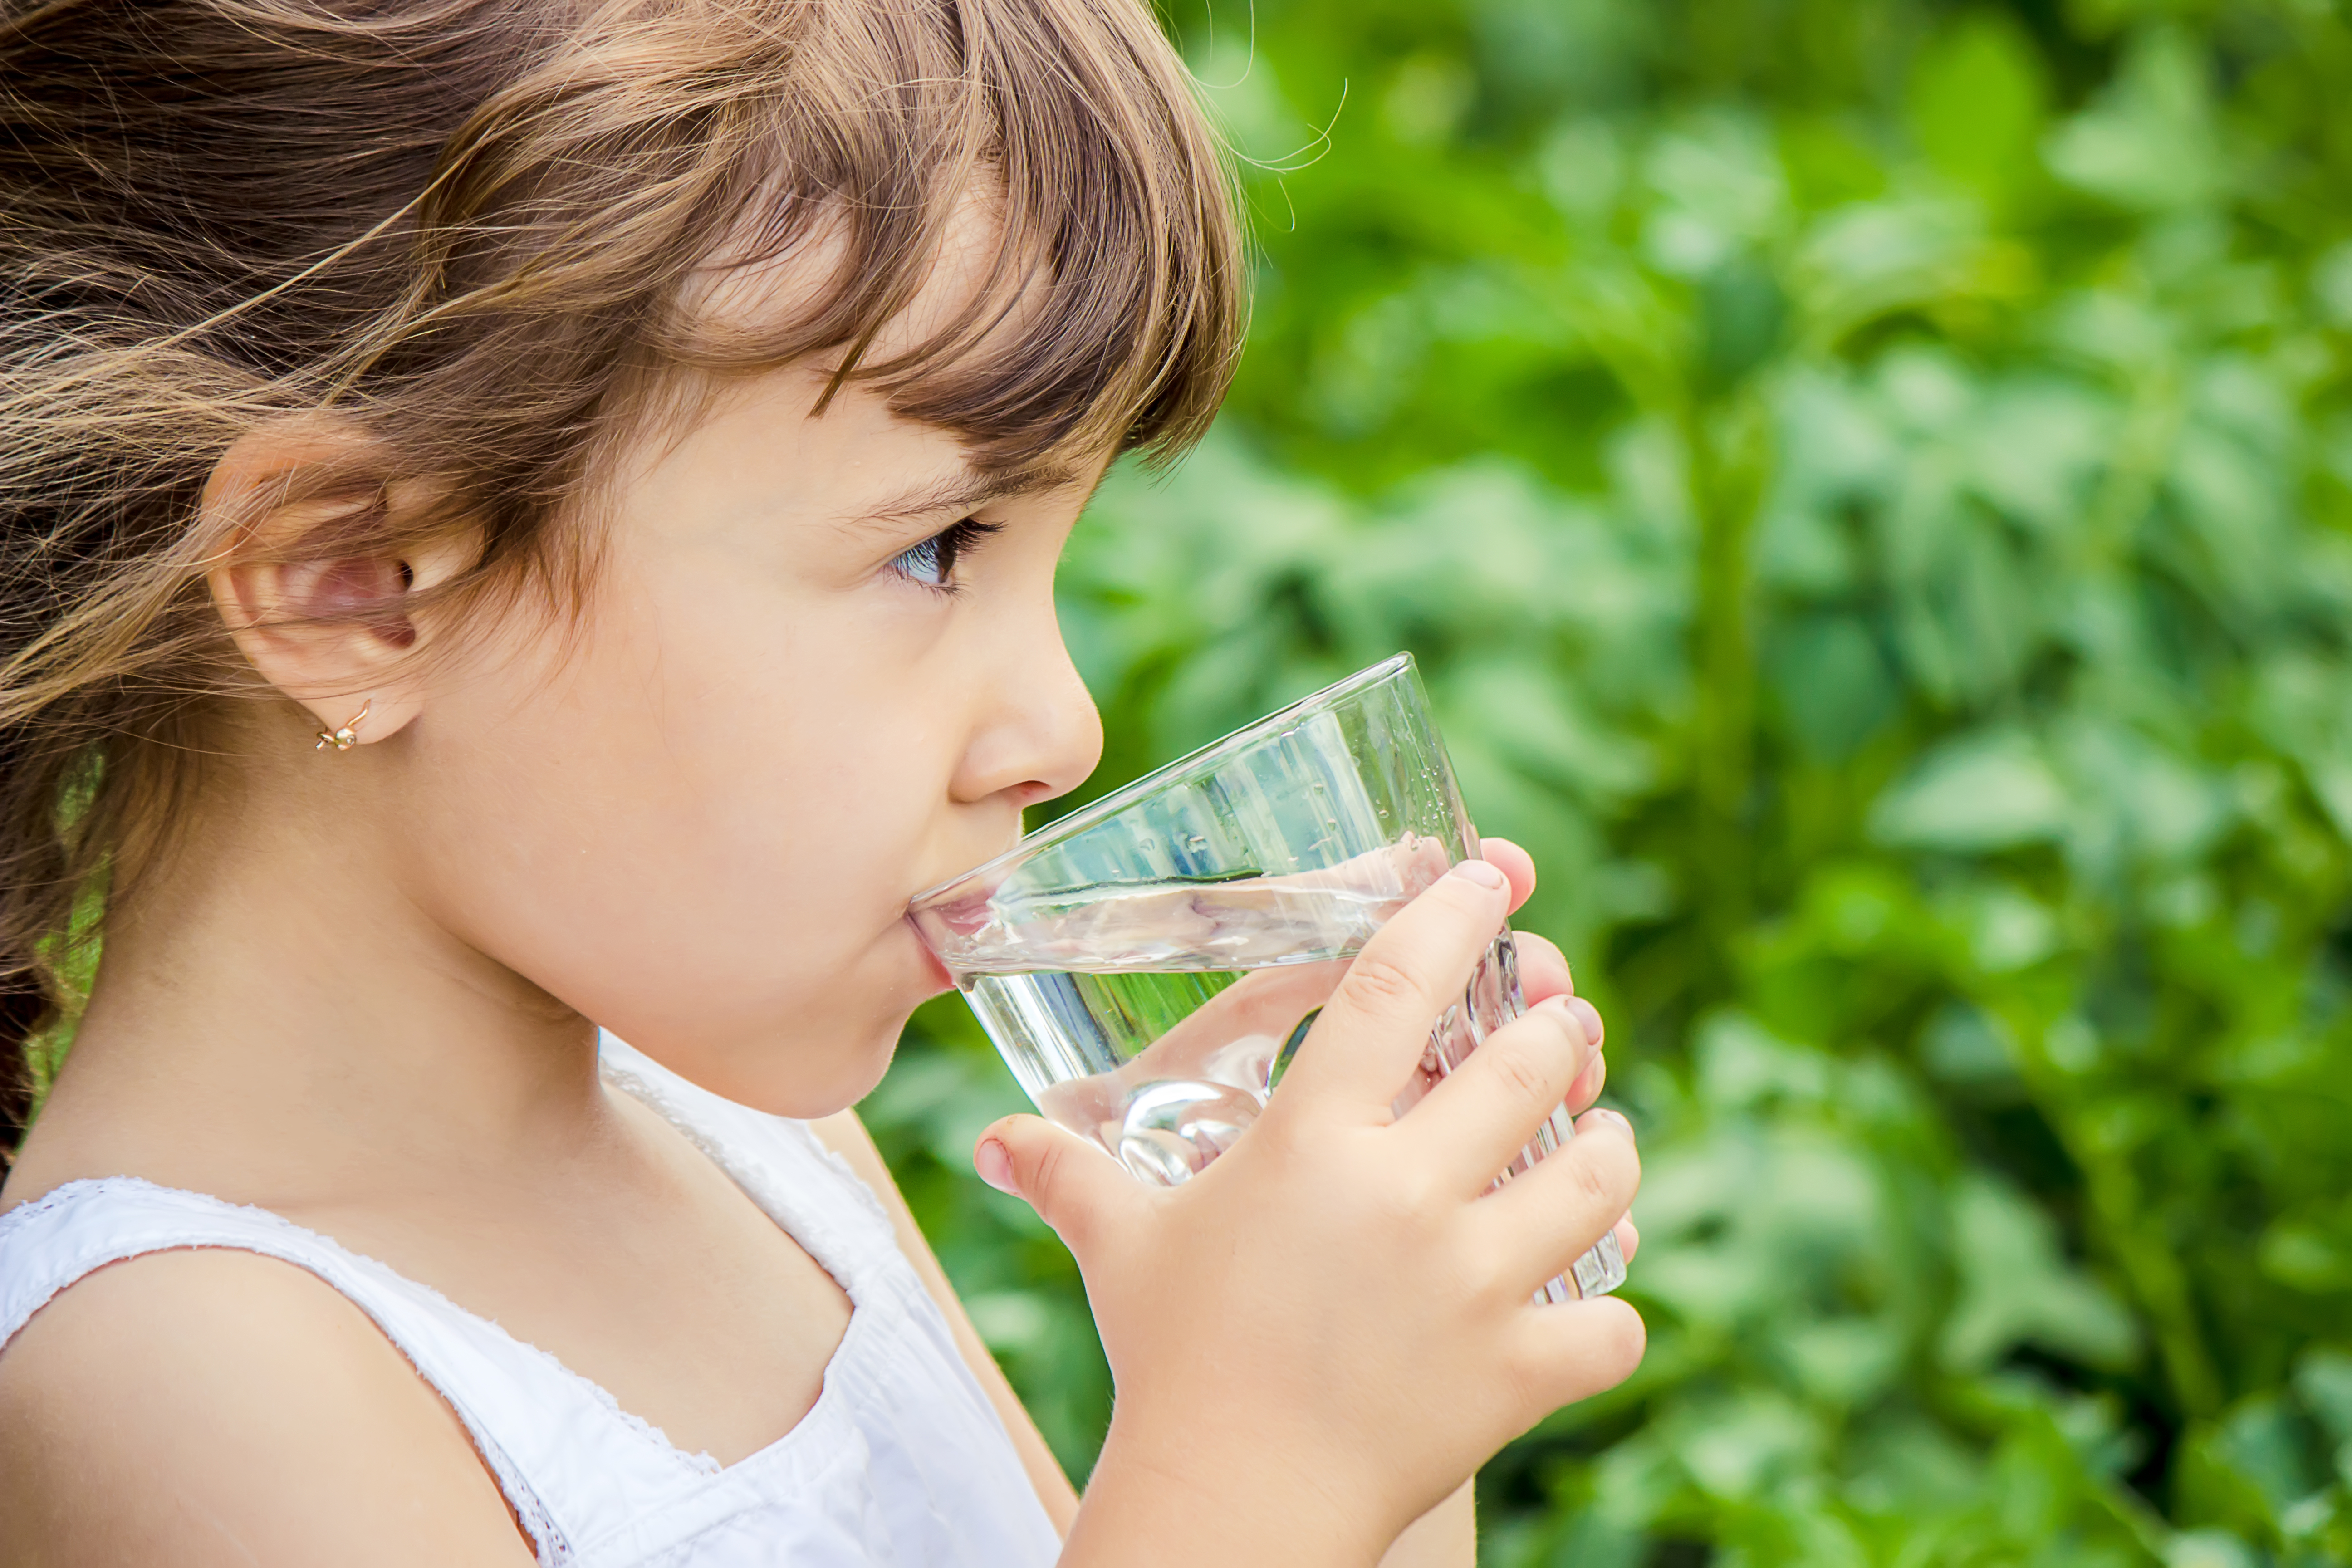 New Water Lead Law Affecting Child Care Centers in California